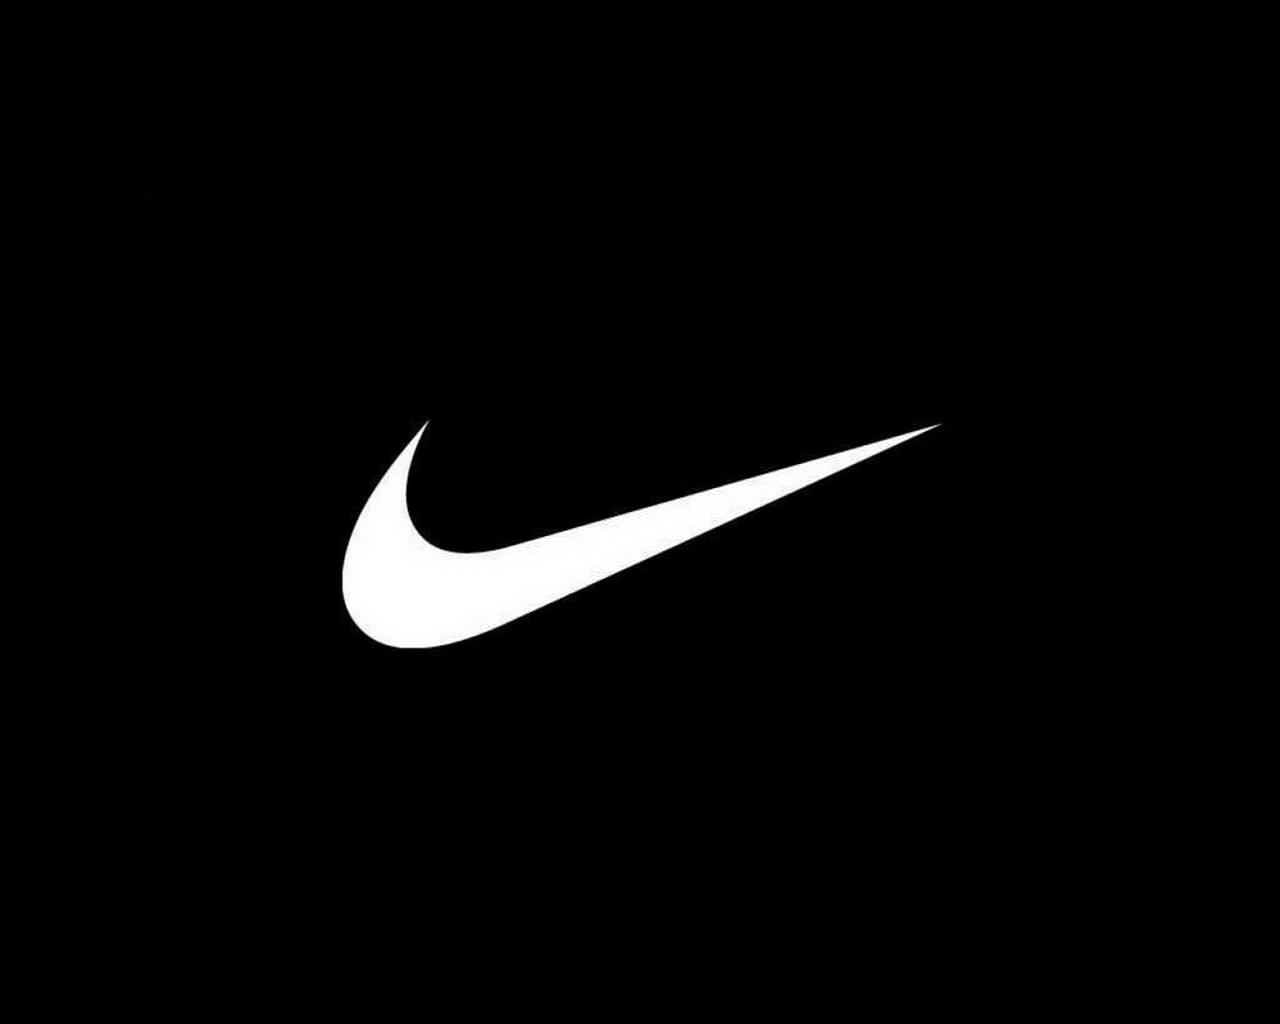 Logotipo_Nike brand marketing